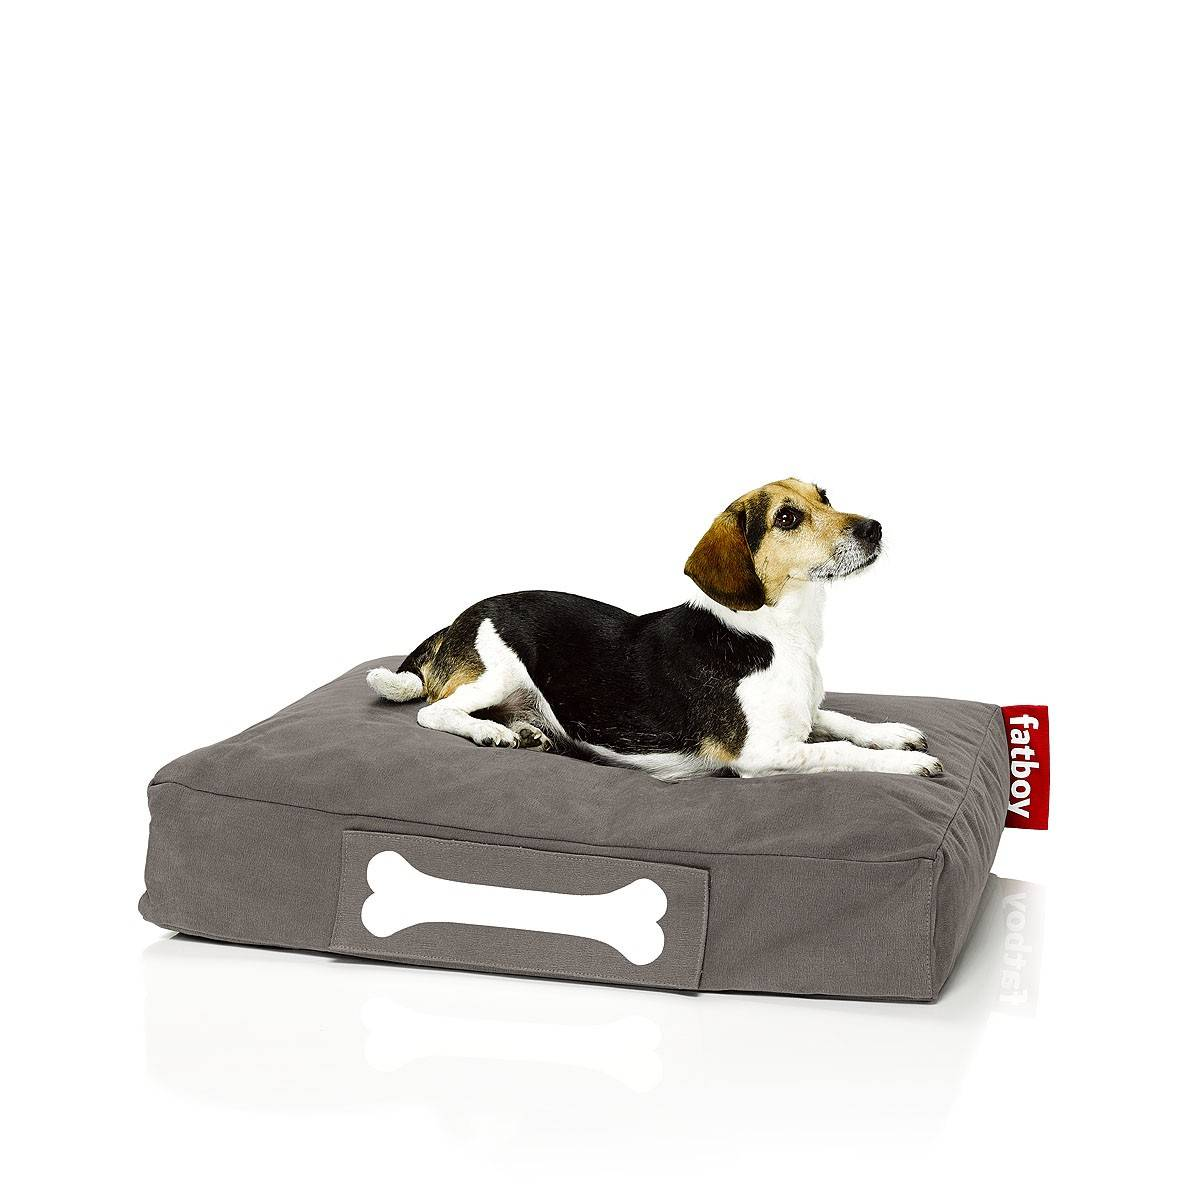 FATBOY sac pouf pour chiens et chats DOGGIELOUNGE STONEWASHED SMALL (Taupe - 100% Coton)